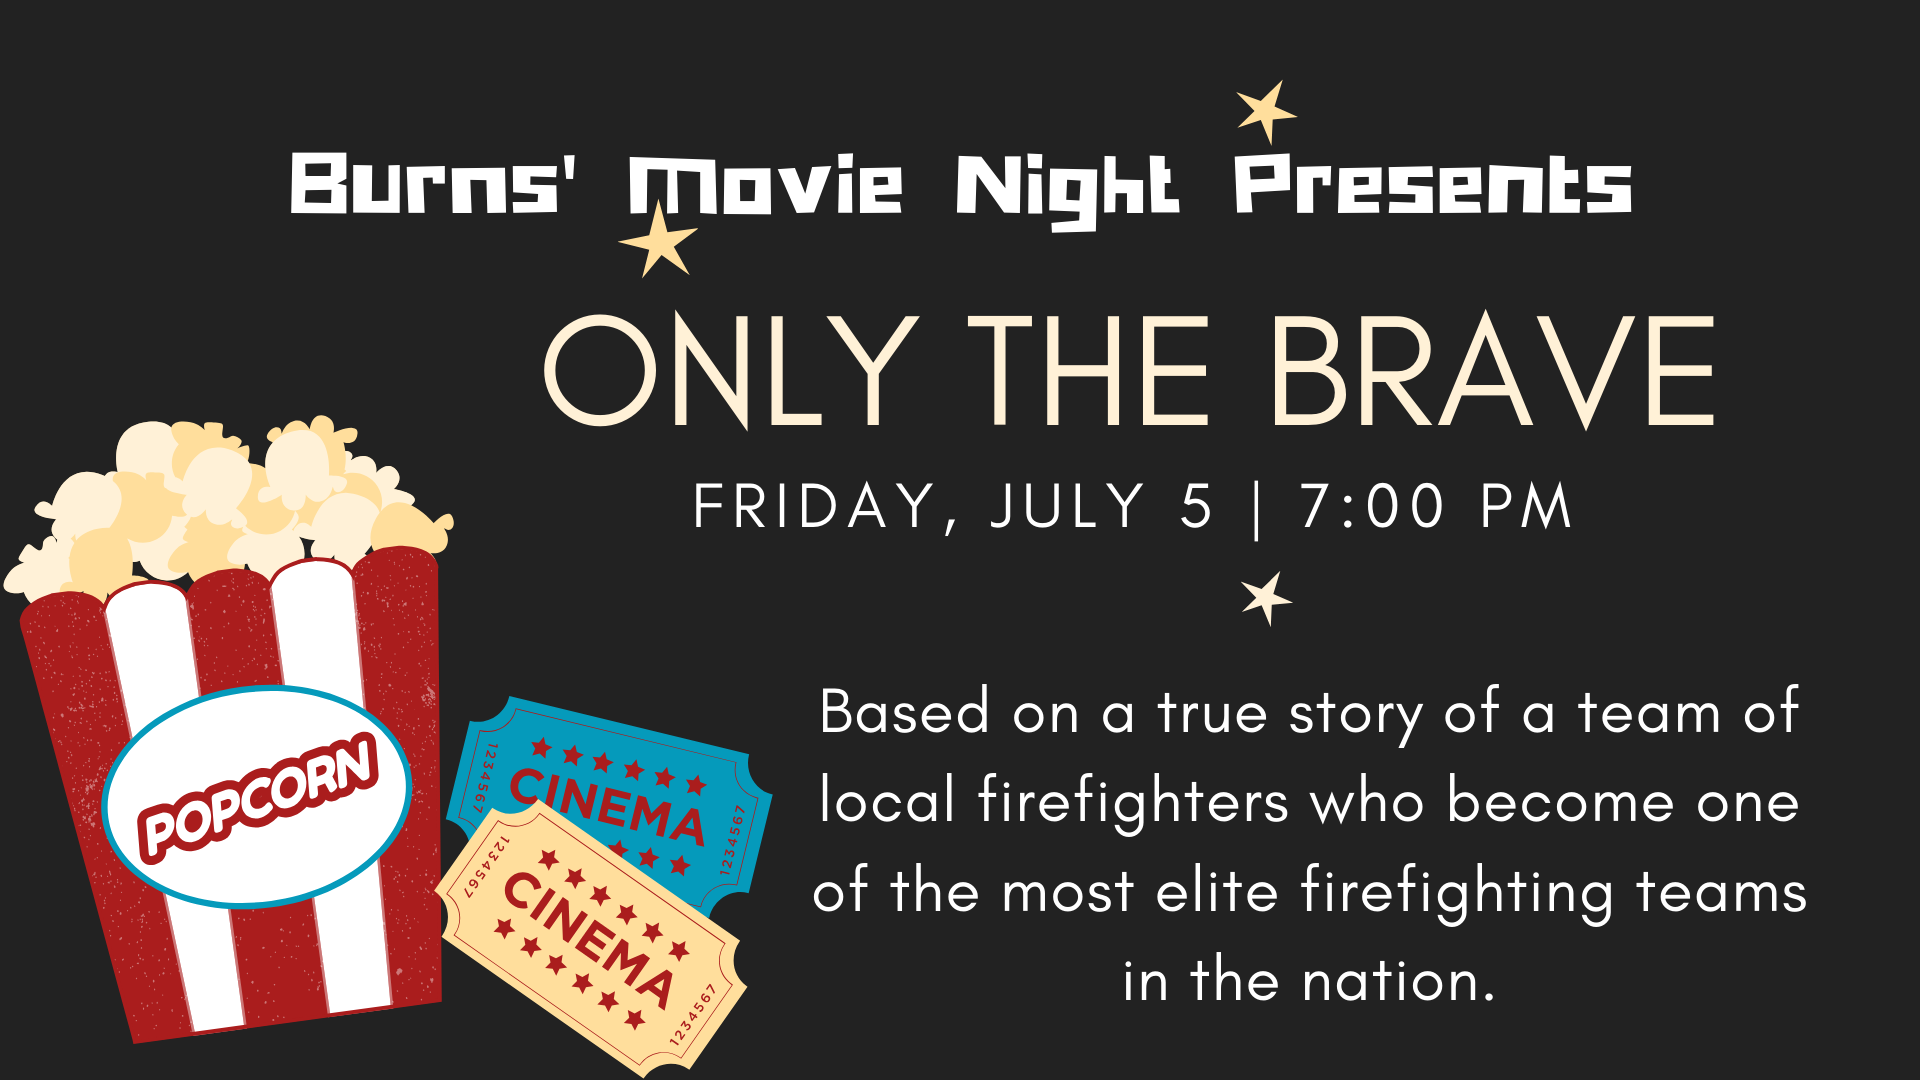 ONLY THE BRAVE (2017, PG-13). Based on the true story of the Granite Mountain Hot Shots, this is the heroic story of a team of local firefighters who--- through hope, determination, and sacrifice--become one of the most elite firefighting teams in the nation.